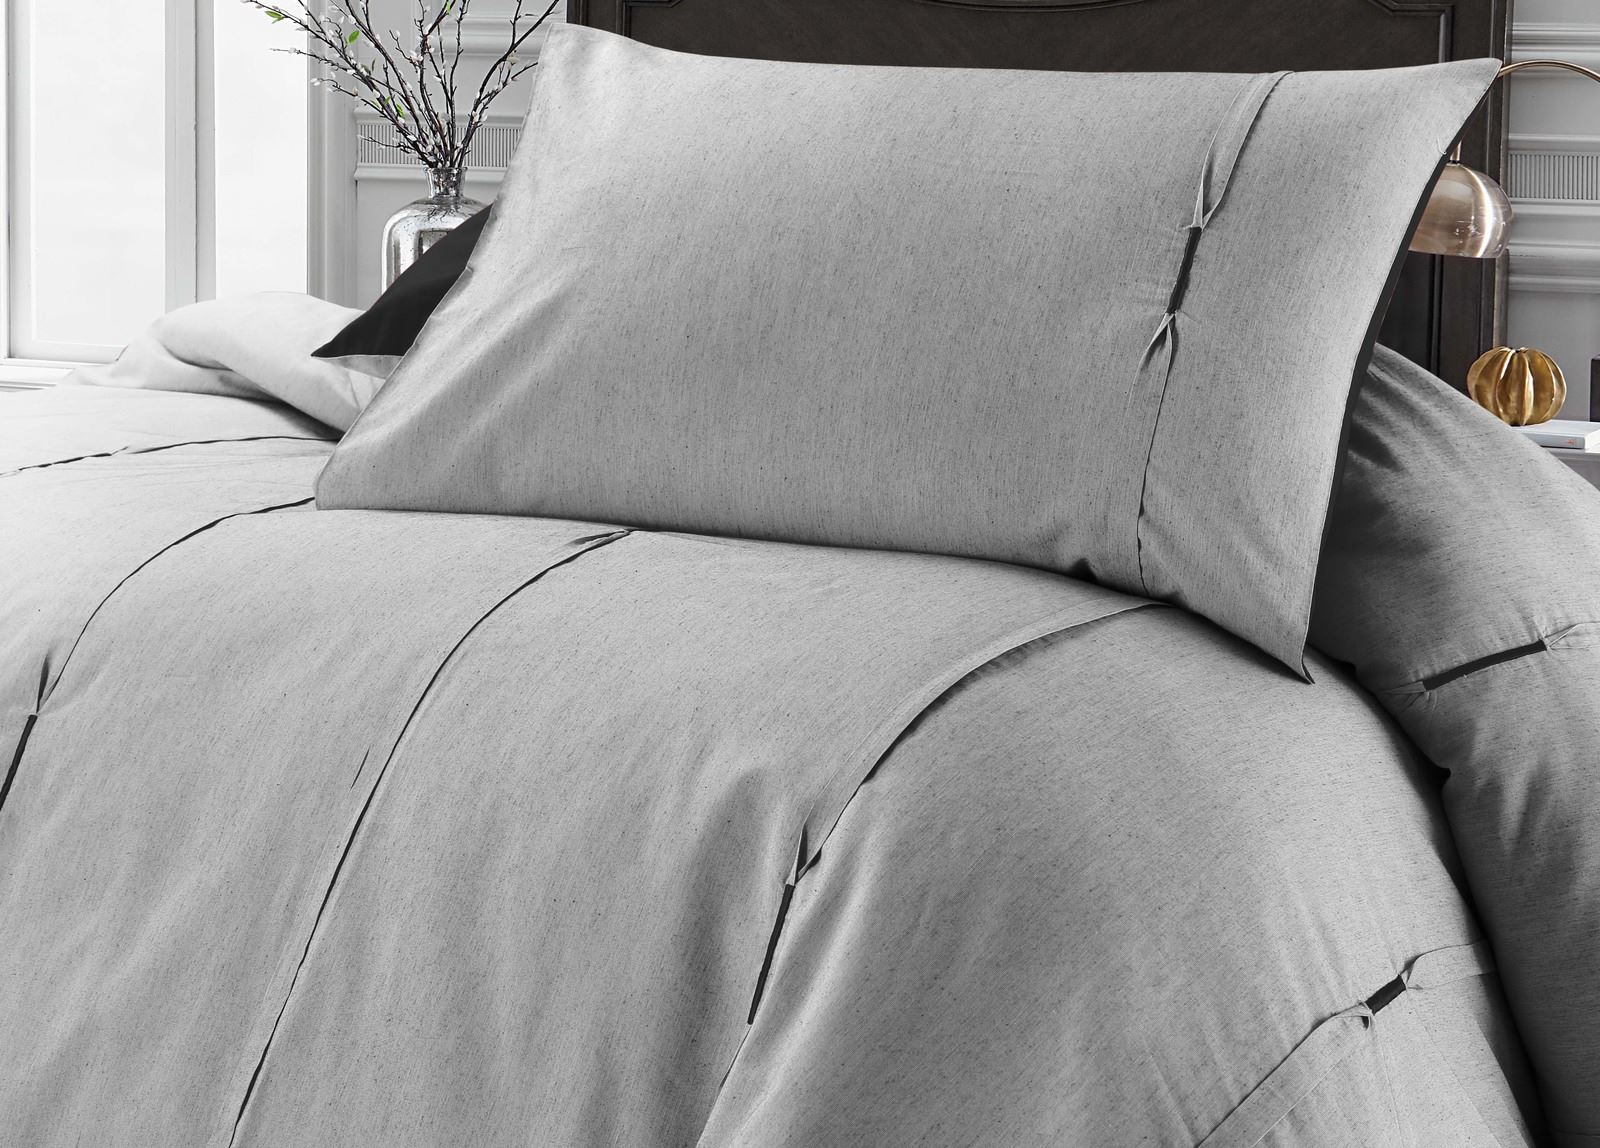 Luxury-Embellished-Duvet-Cover-Set-Single-Double-Super-King-Size-Bedding-Grey thumbnail 14